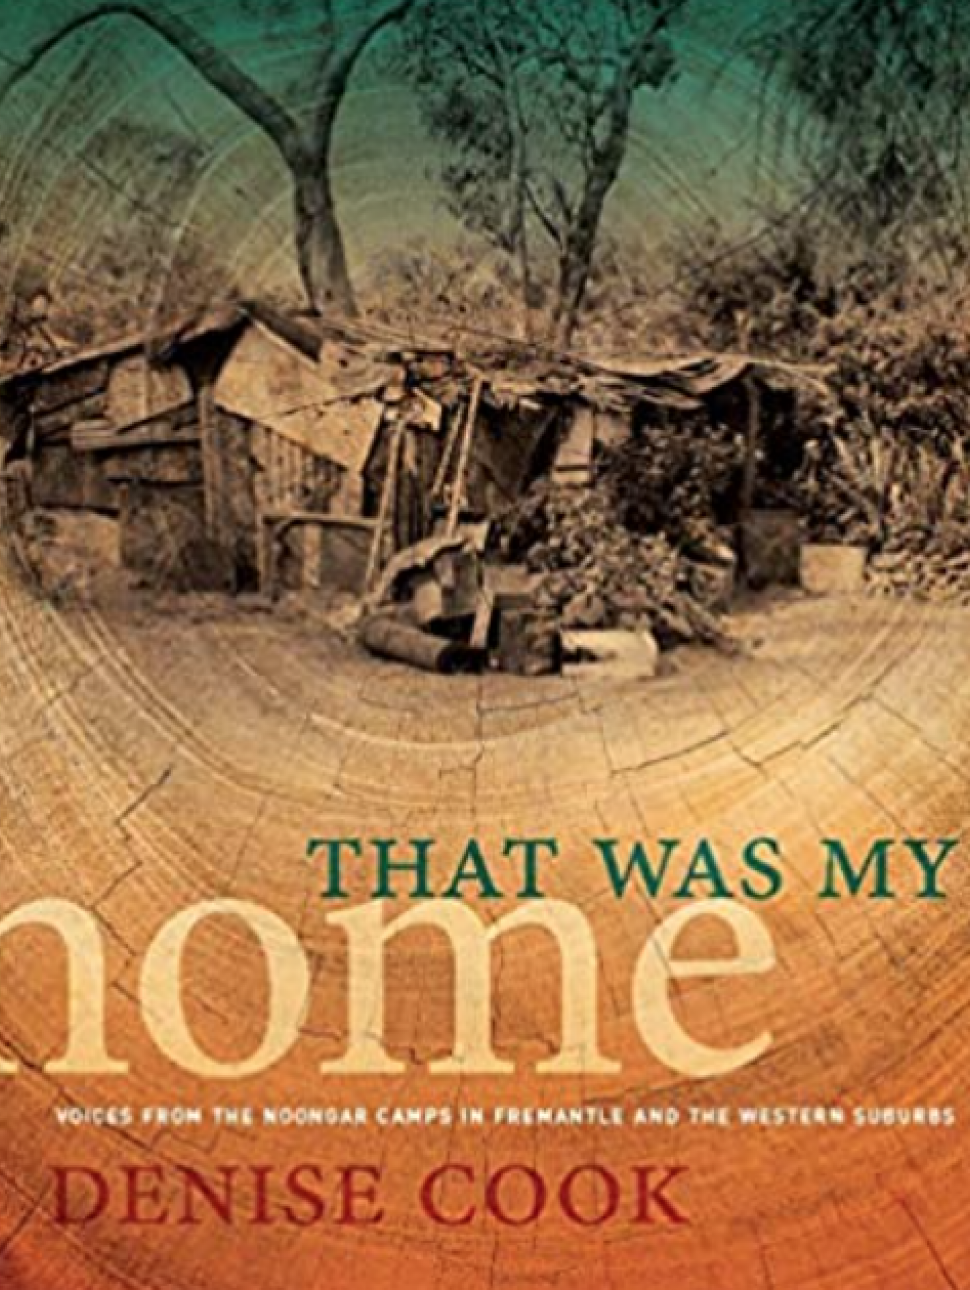 An image of the cover of a book 'That was my home' by Denise Cook, featuring a photograph of a camp surrounded by trees